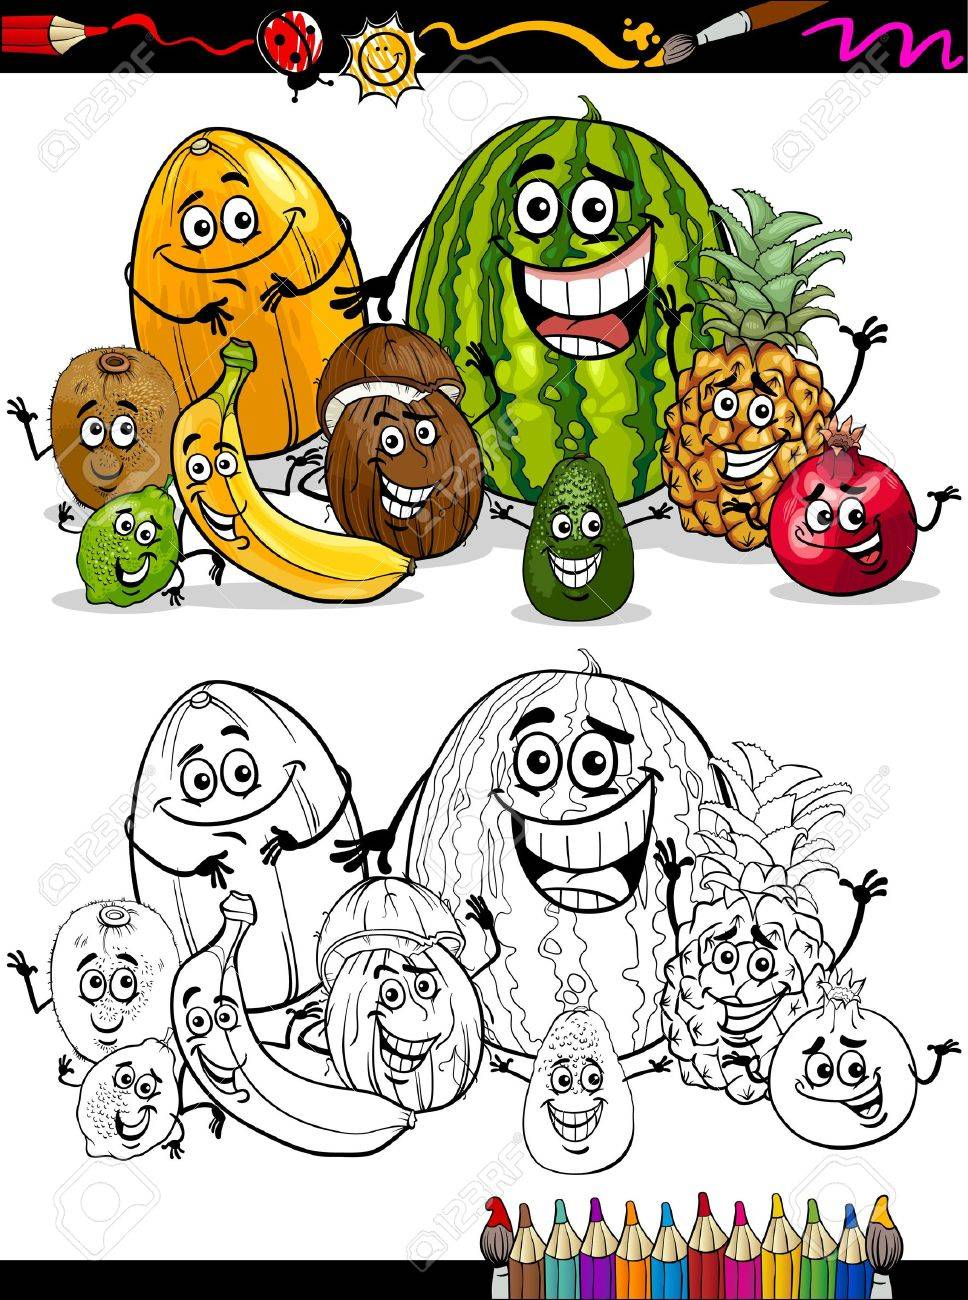 coloring book or page cartoon illustration of funny tropical